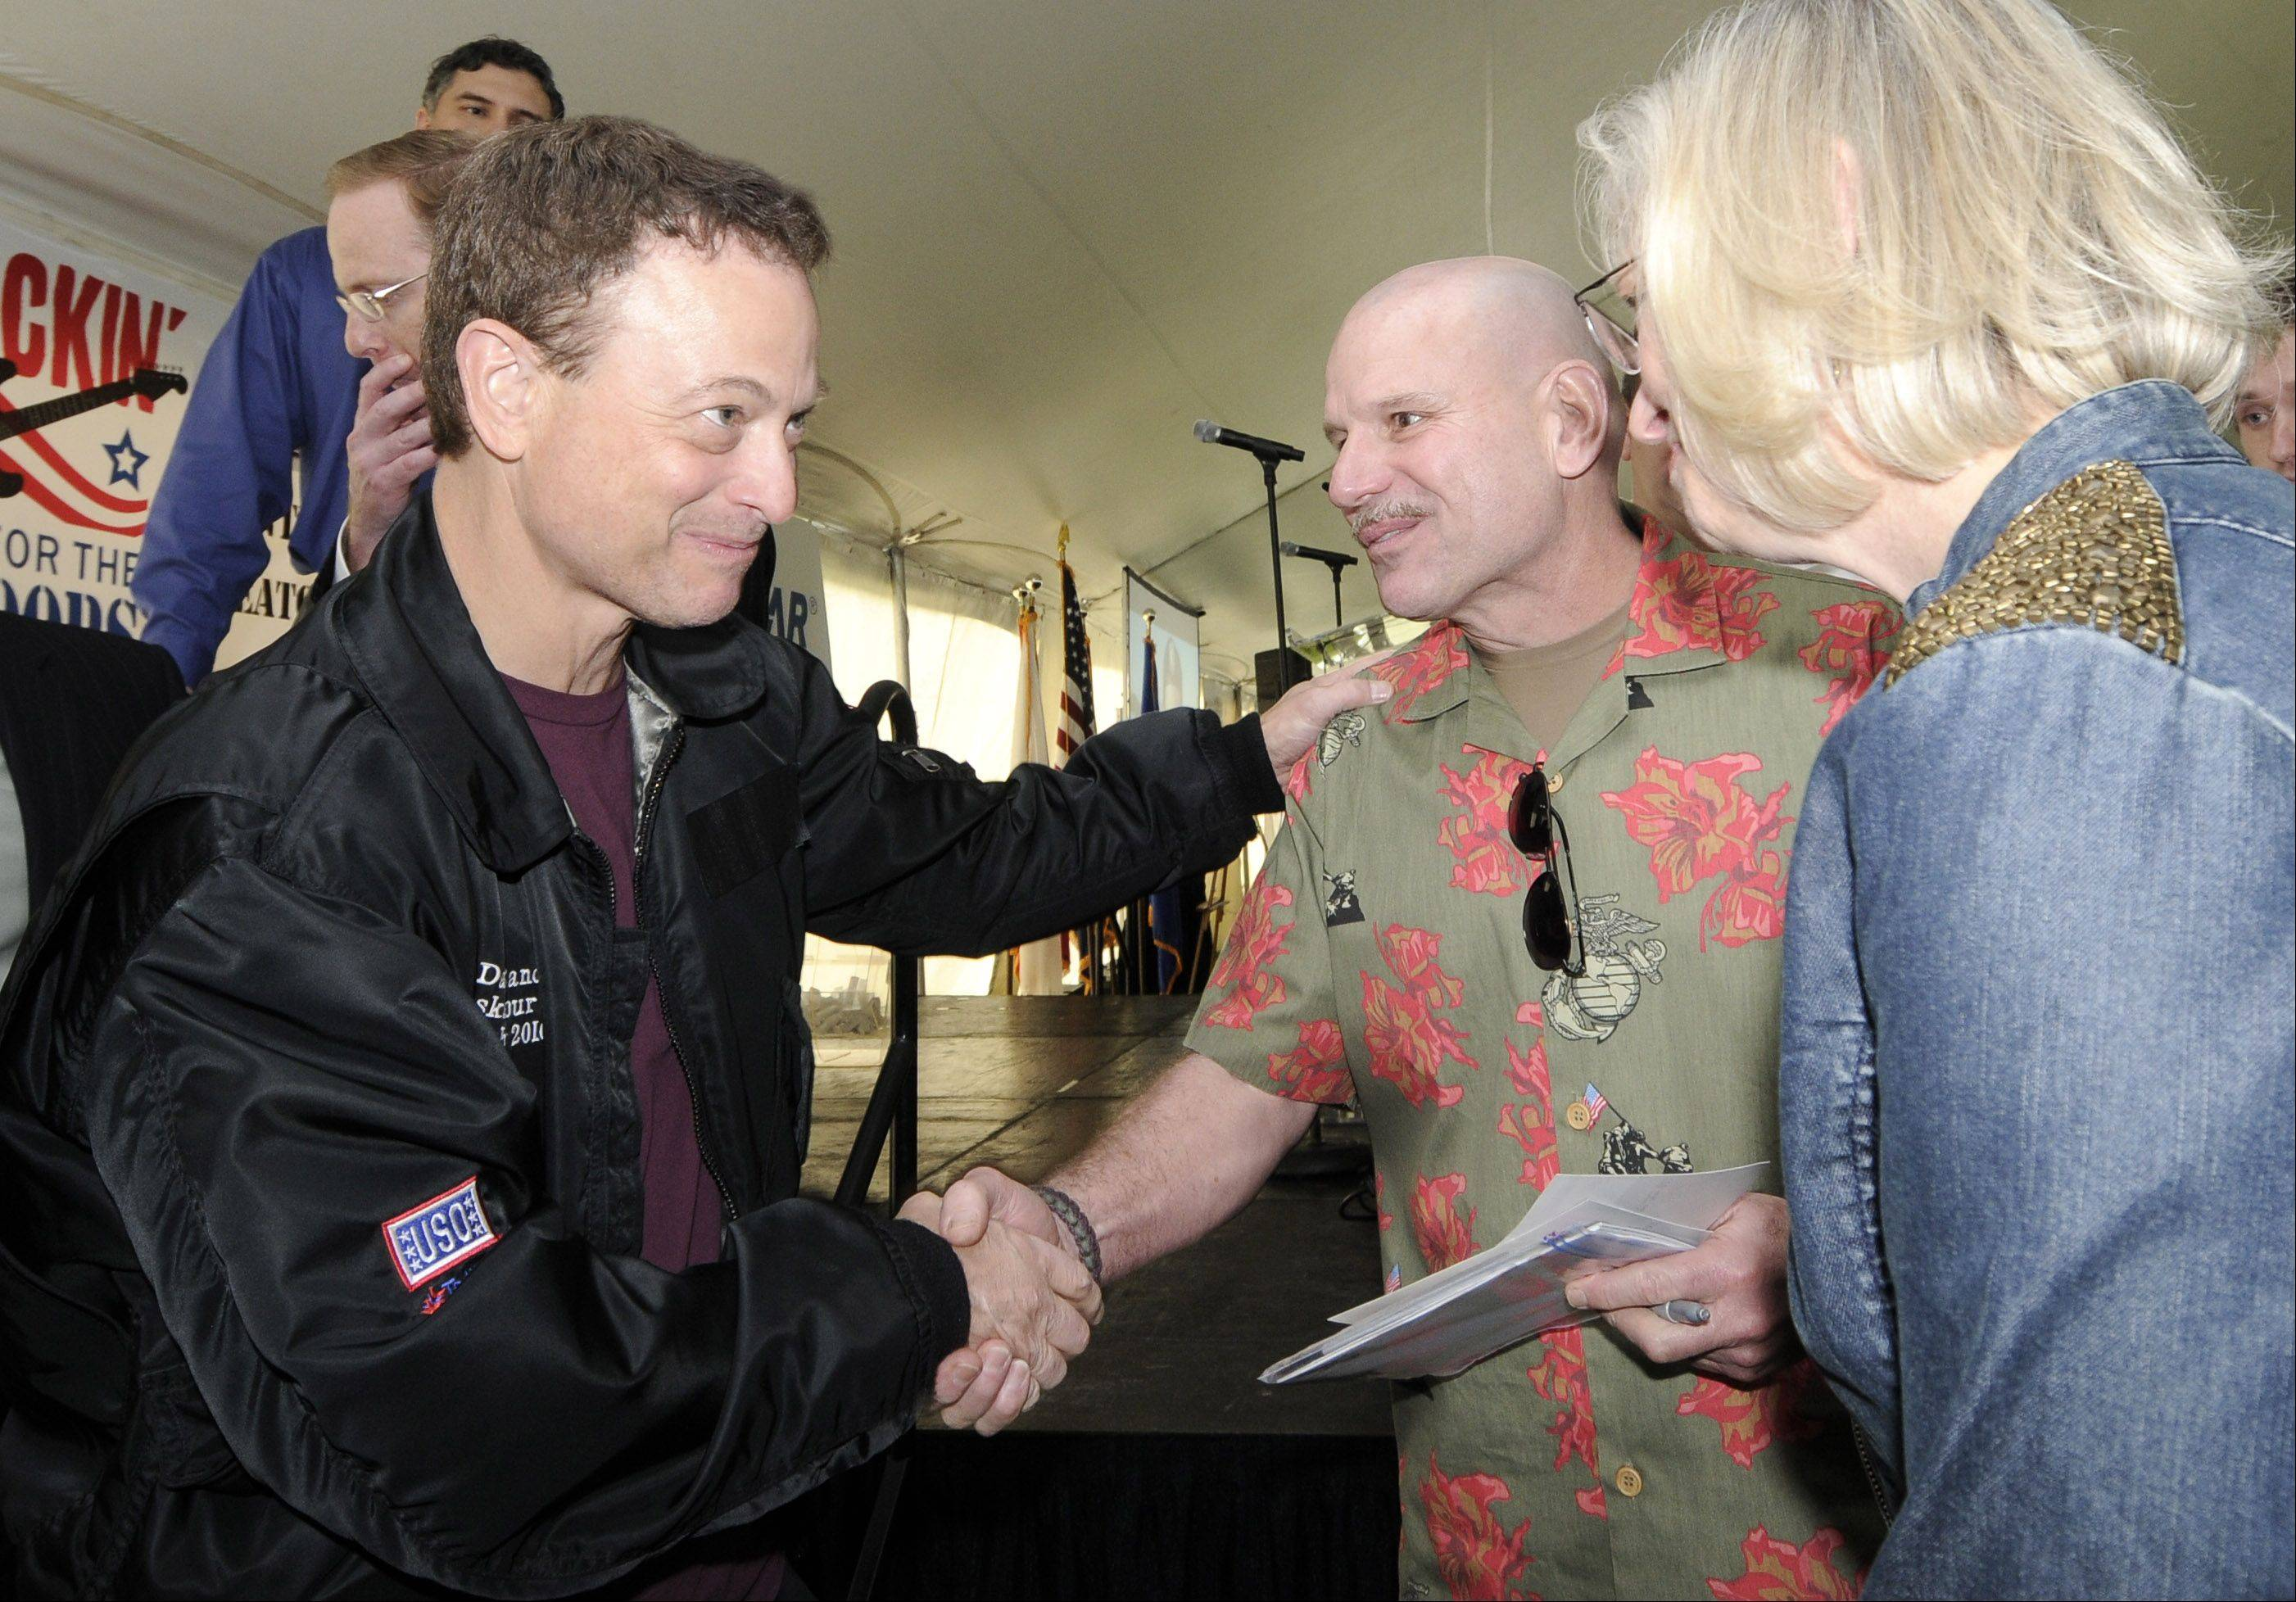 While on tour, Gary Sinise strives to meet active and retired servicemen and women and their families to express his support personally as well as through performances by his Lt. Dan Band.